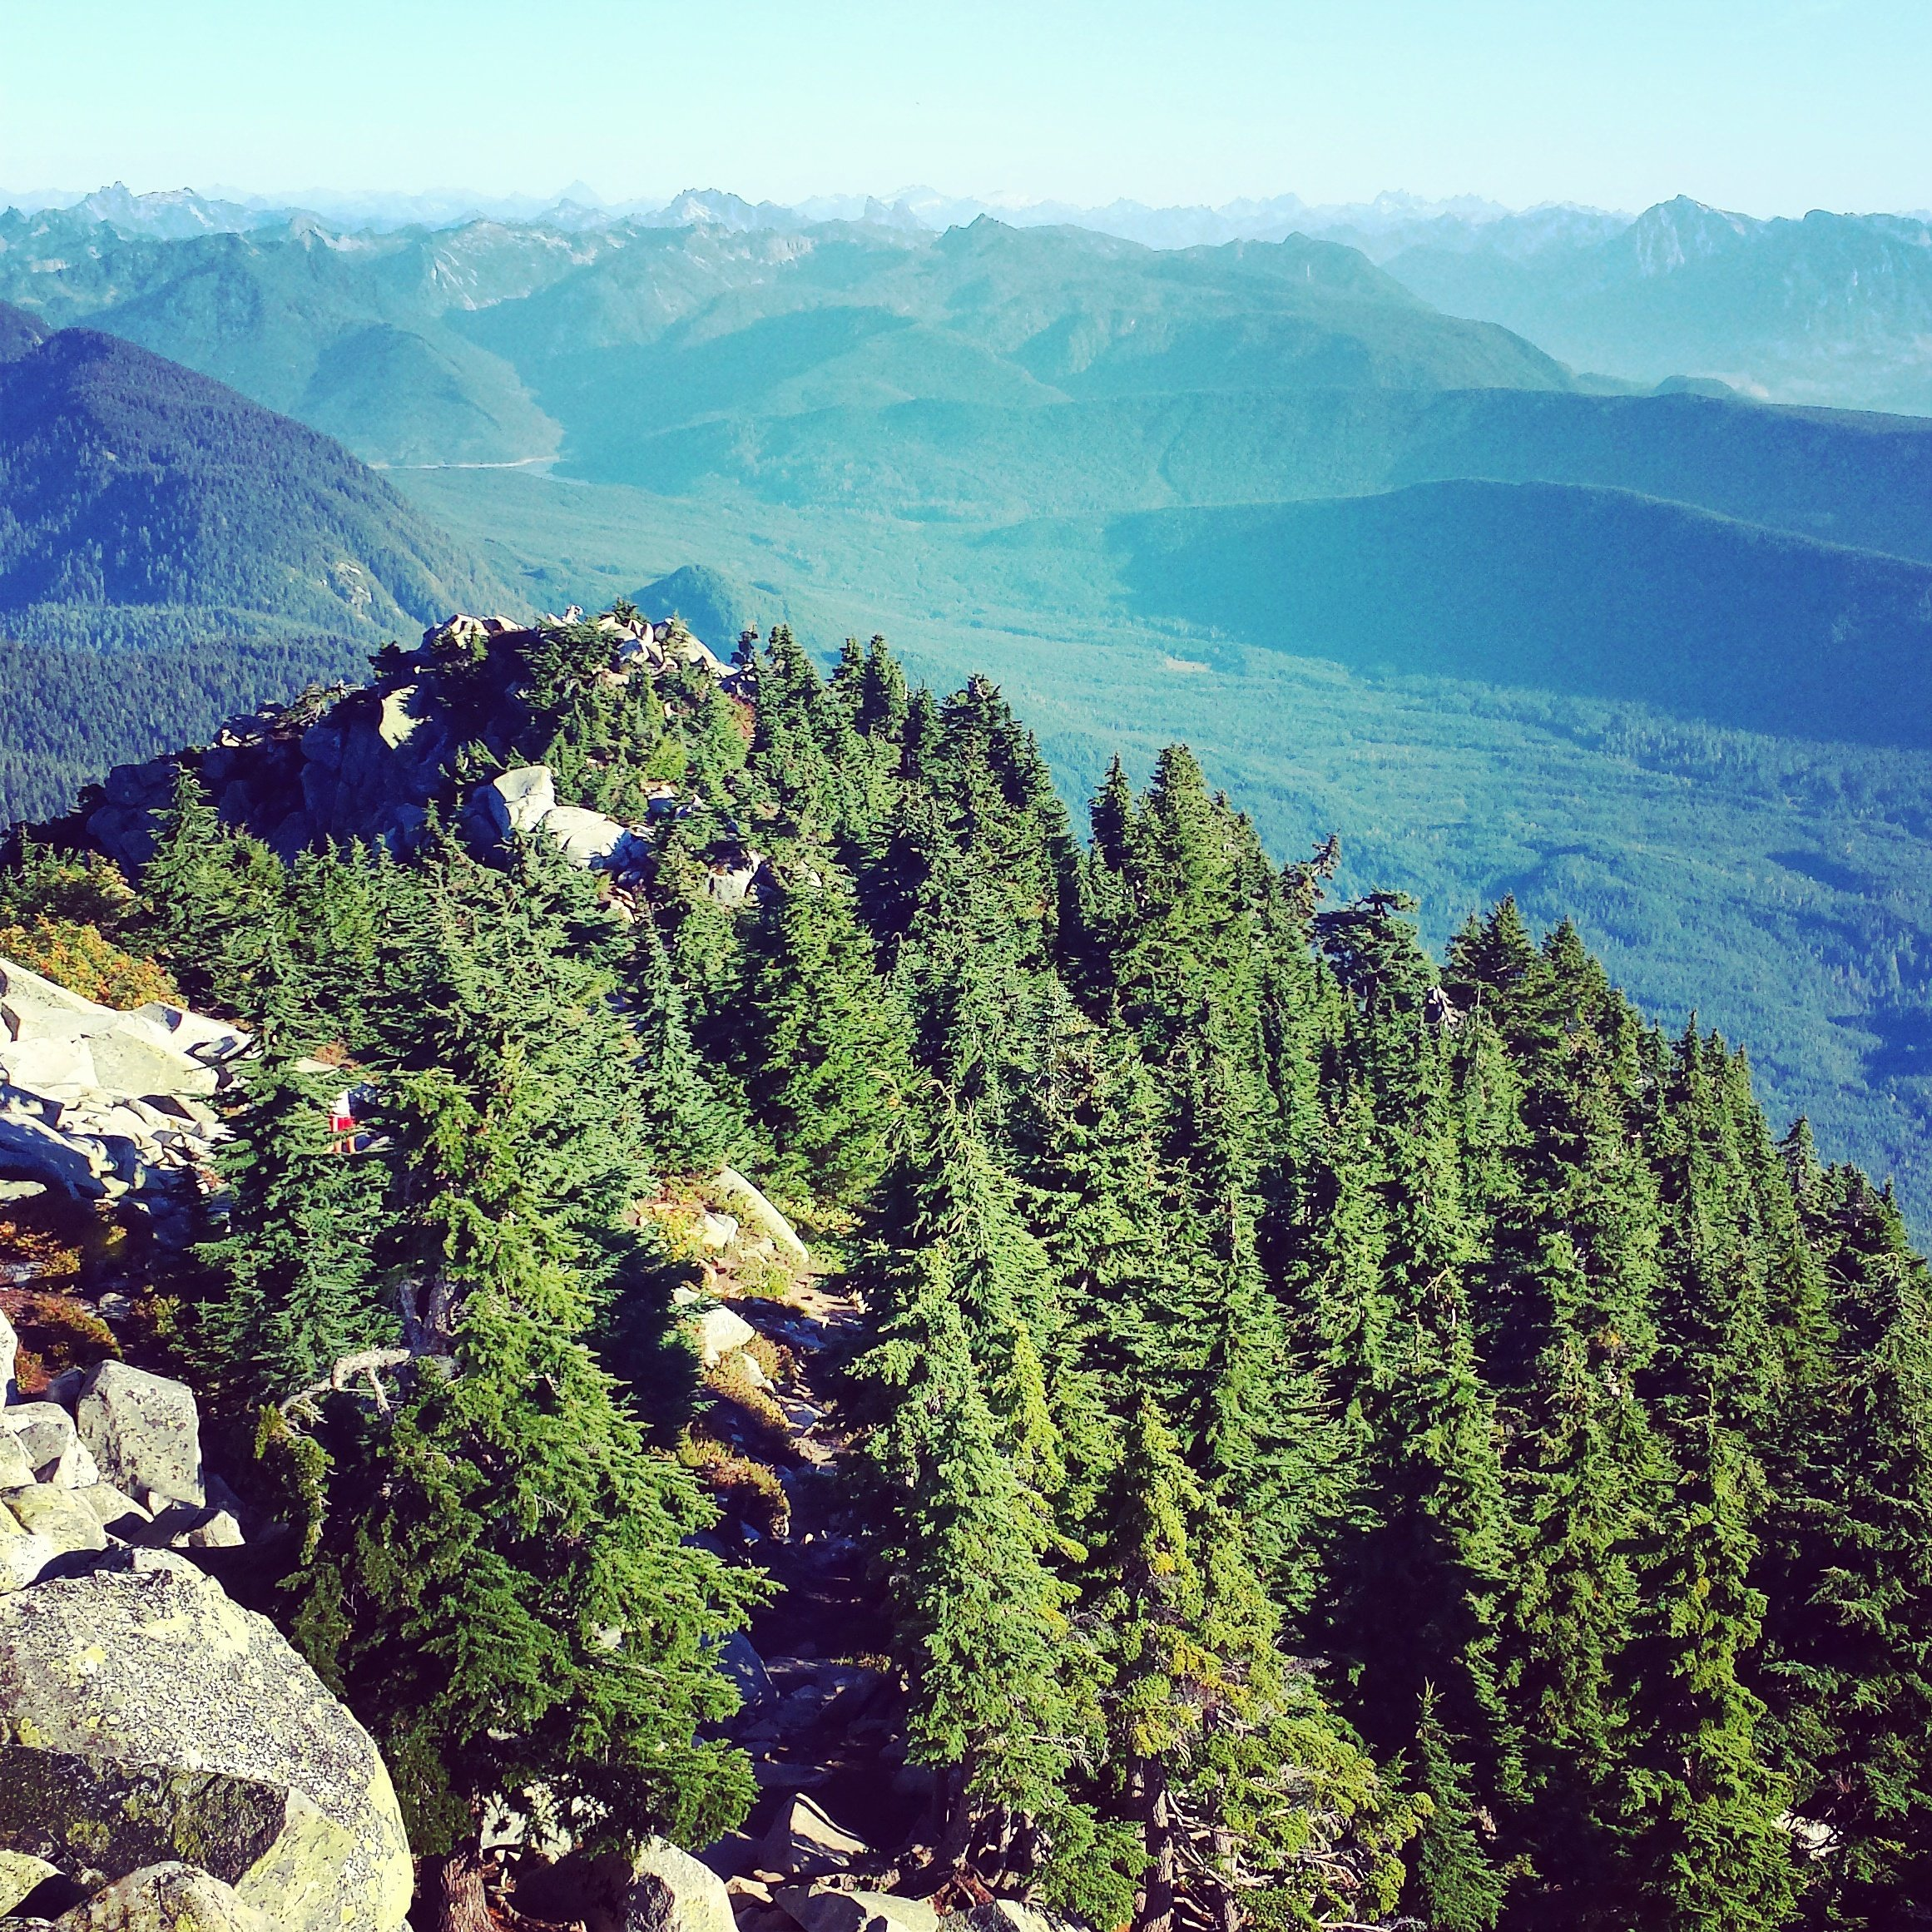 Photo Journal Mount Pilchuck, WA by Sabrina Brett